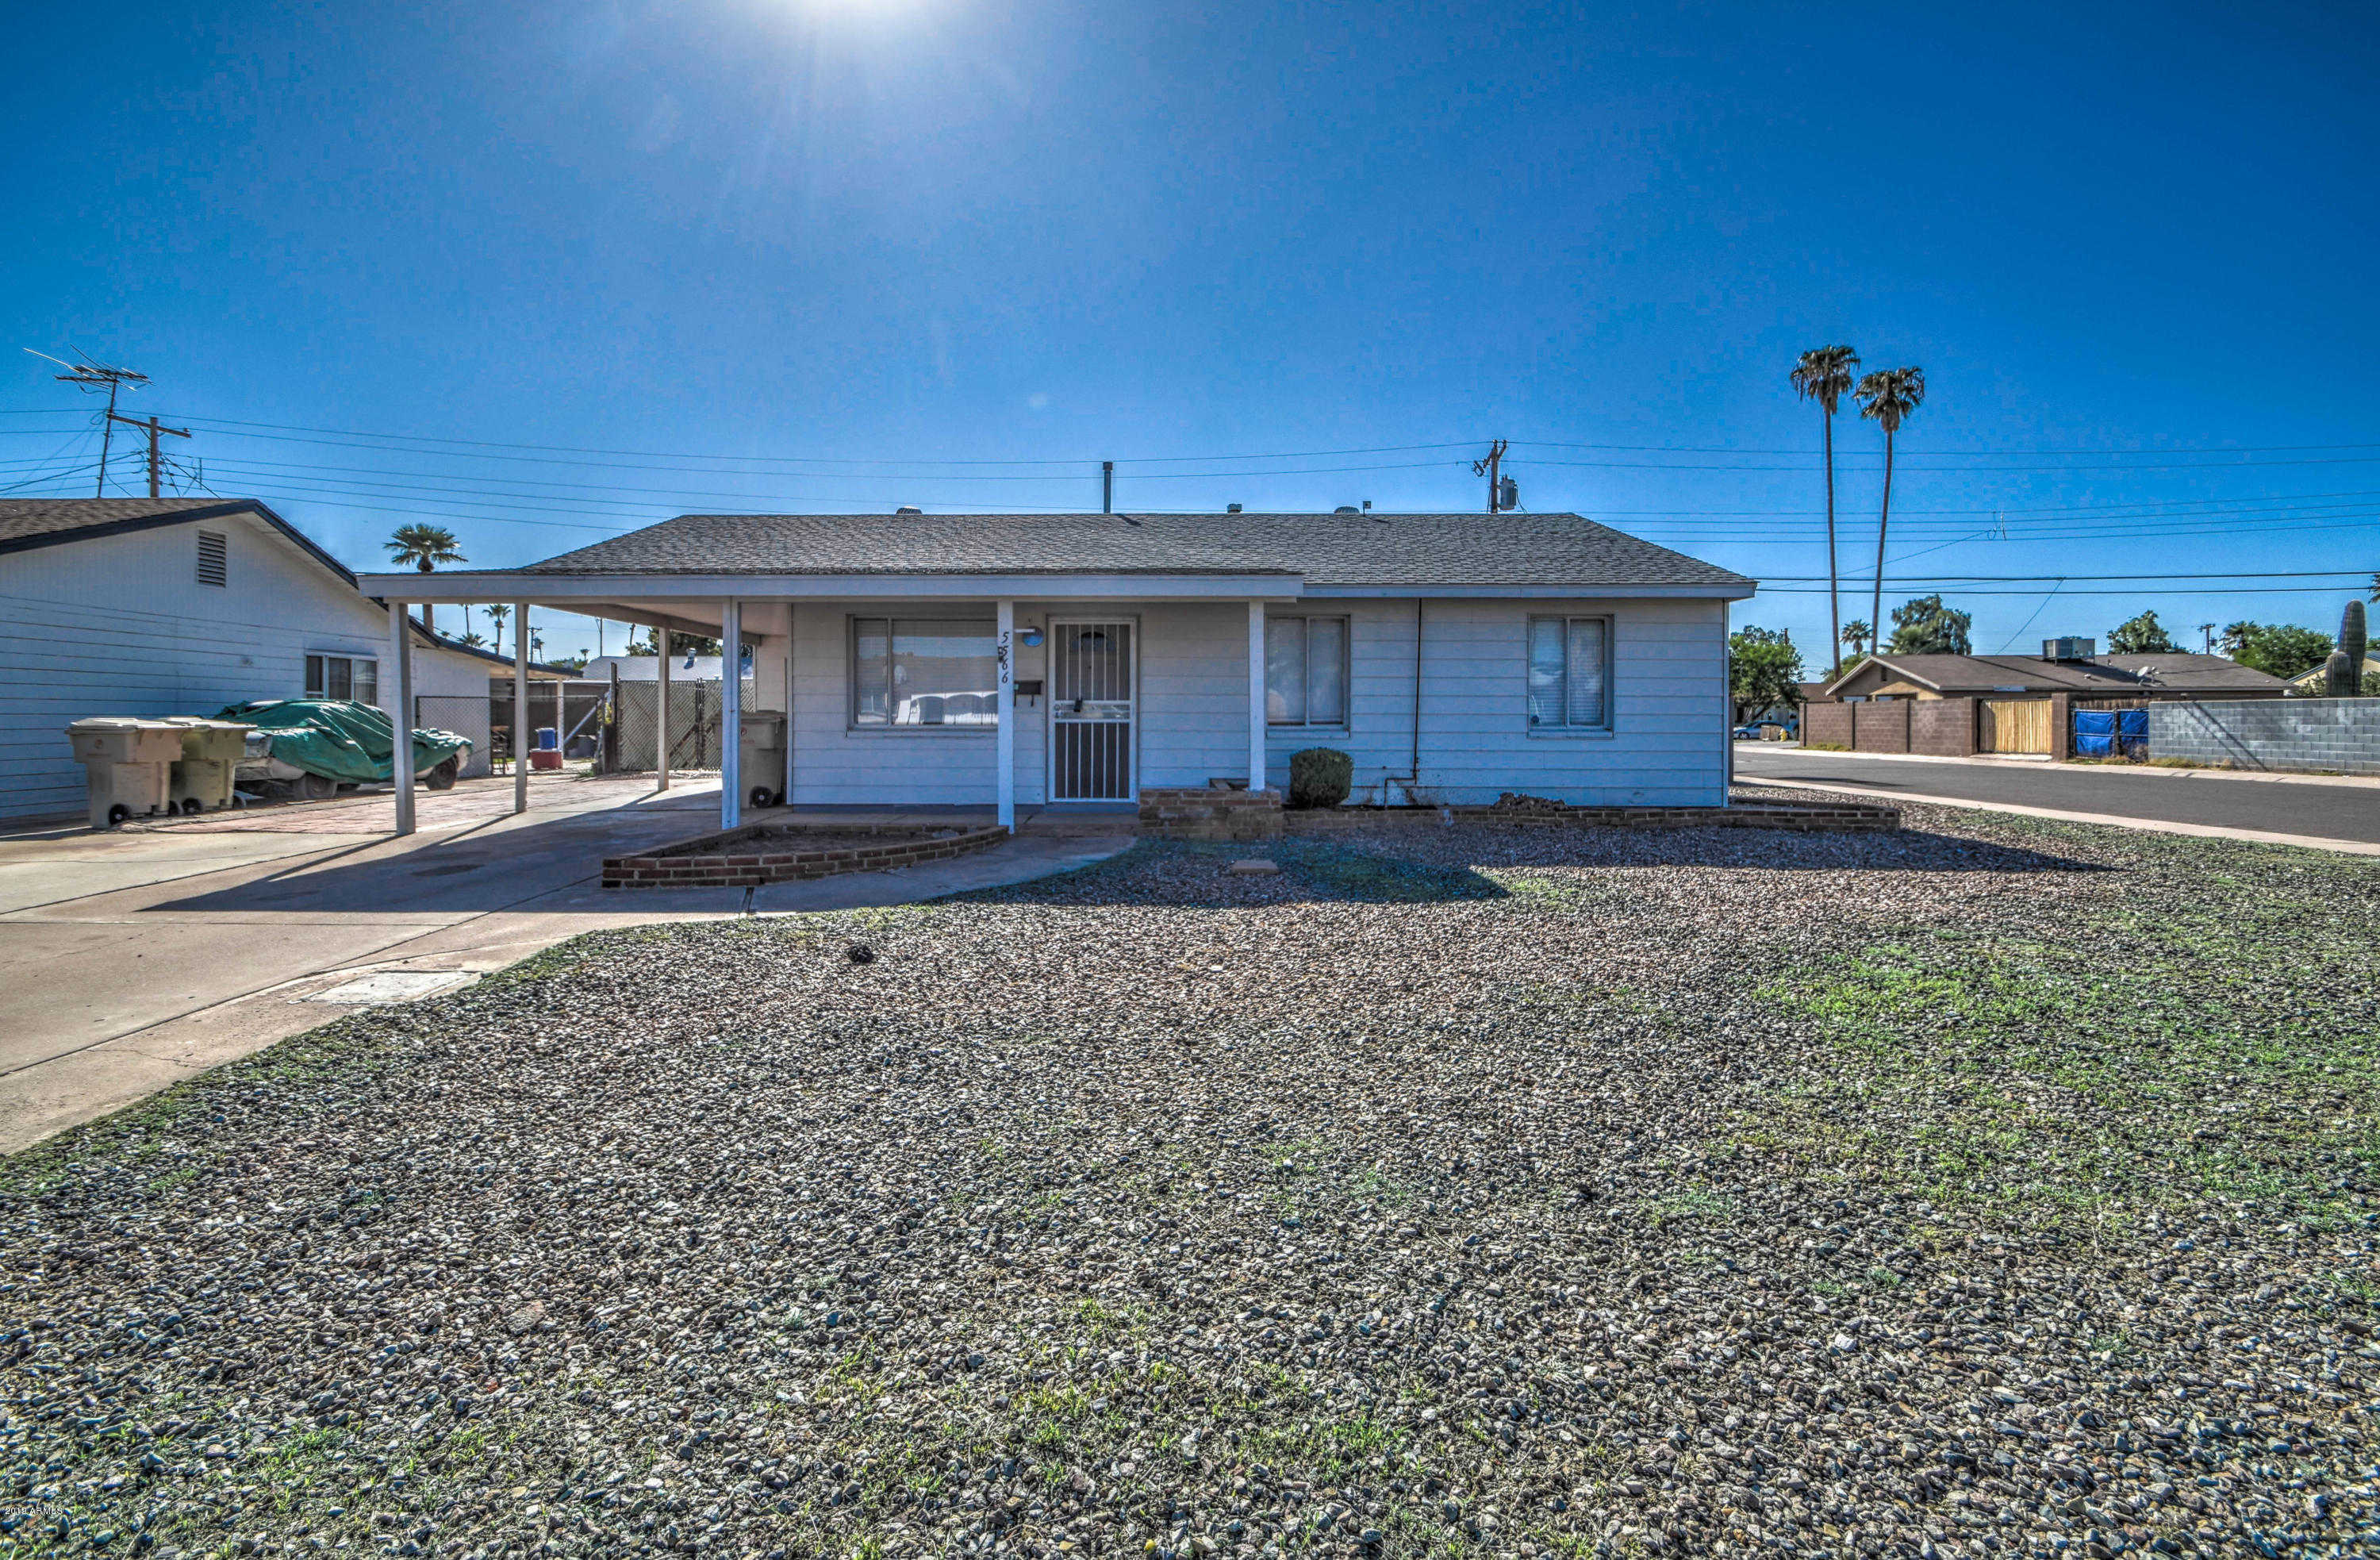 $203,900 - 3Br/2Ba - Home for Sale in Maryvale Terrace 20-a Lts 7490-7494, Glendale